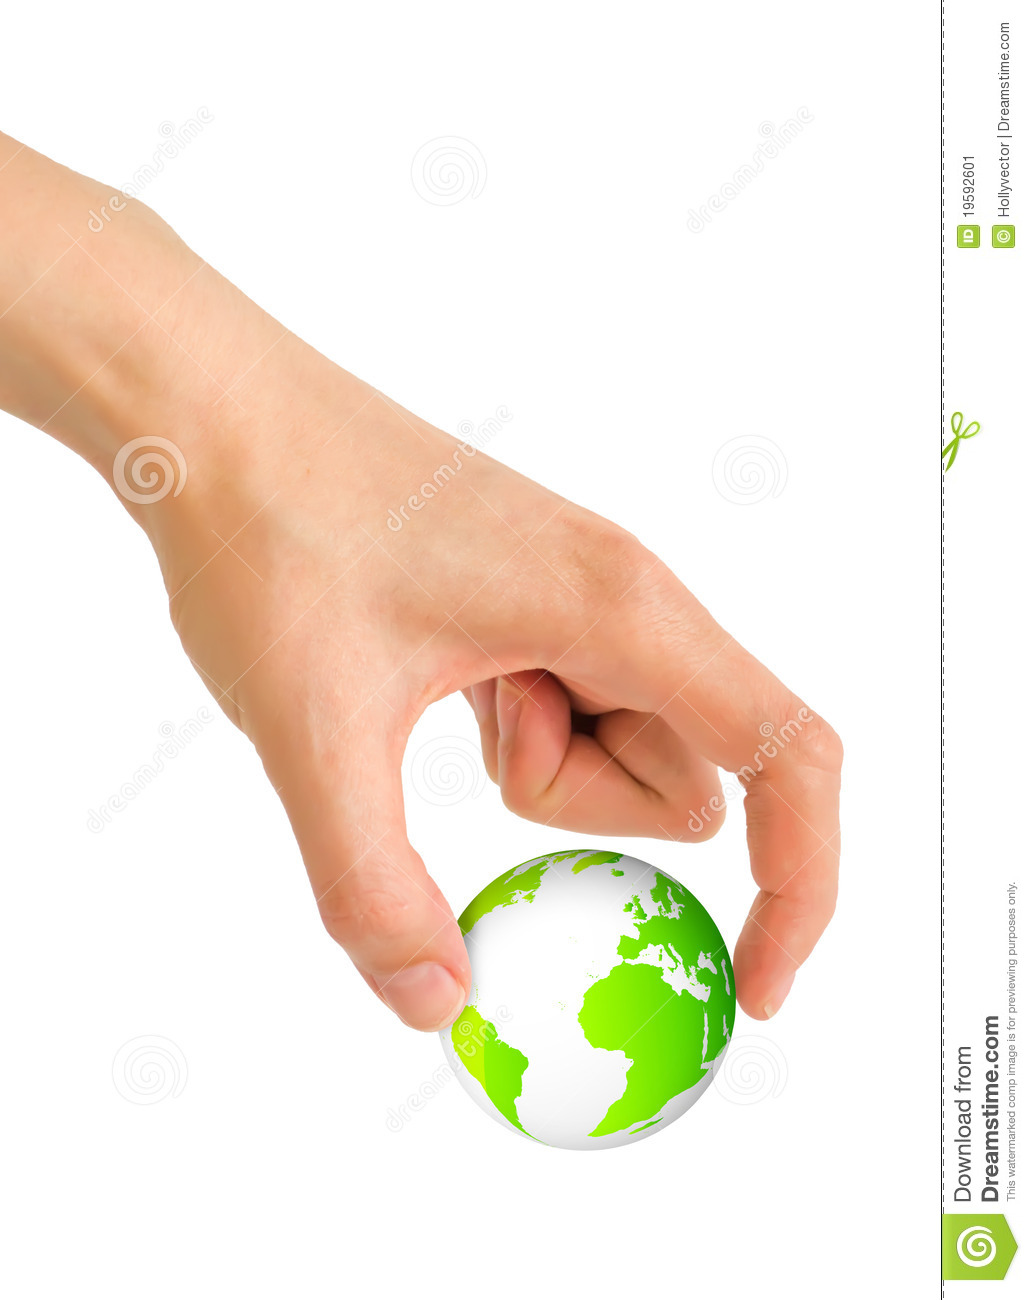 hand grab world stock image image of ecology  save peace sign vector transparent peace sign vector png